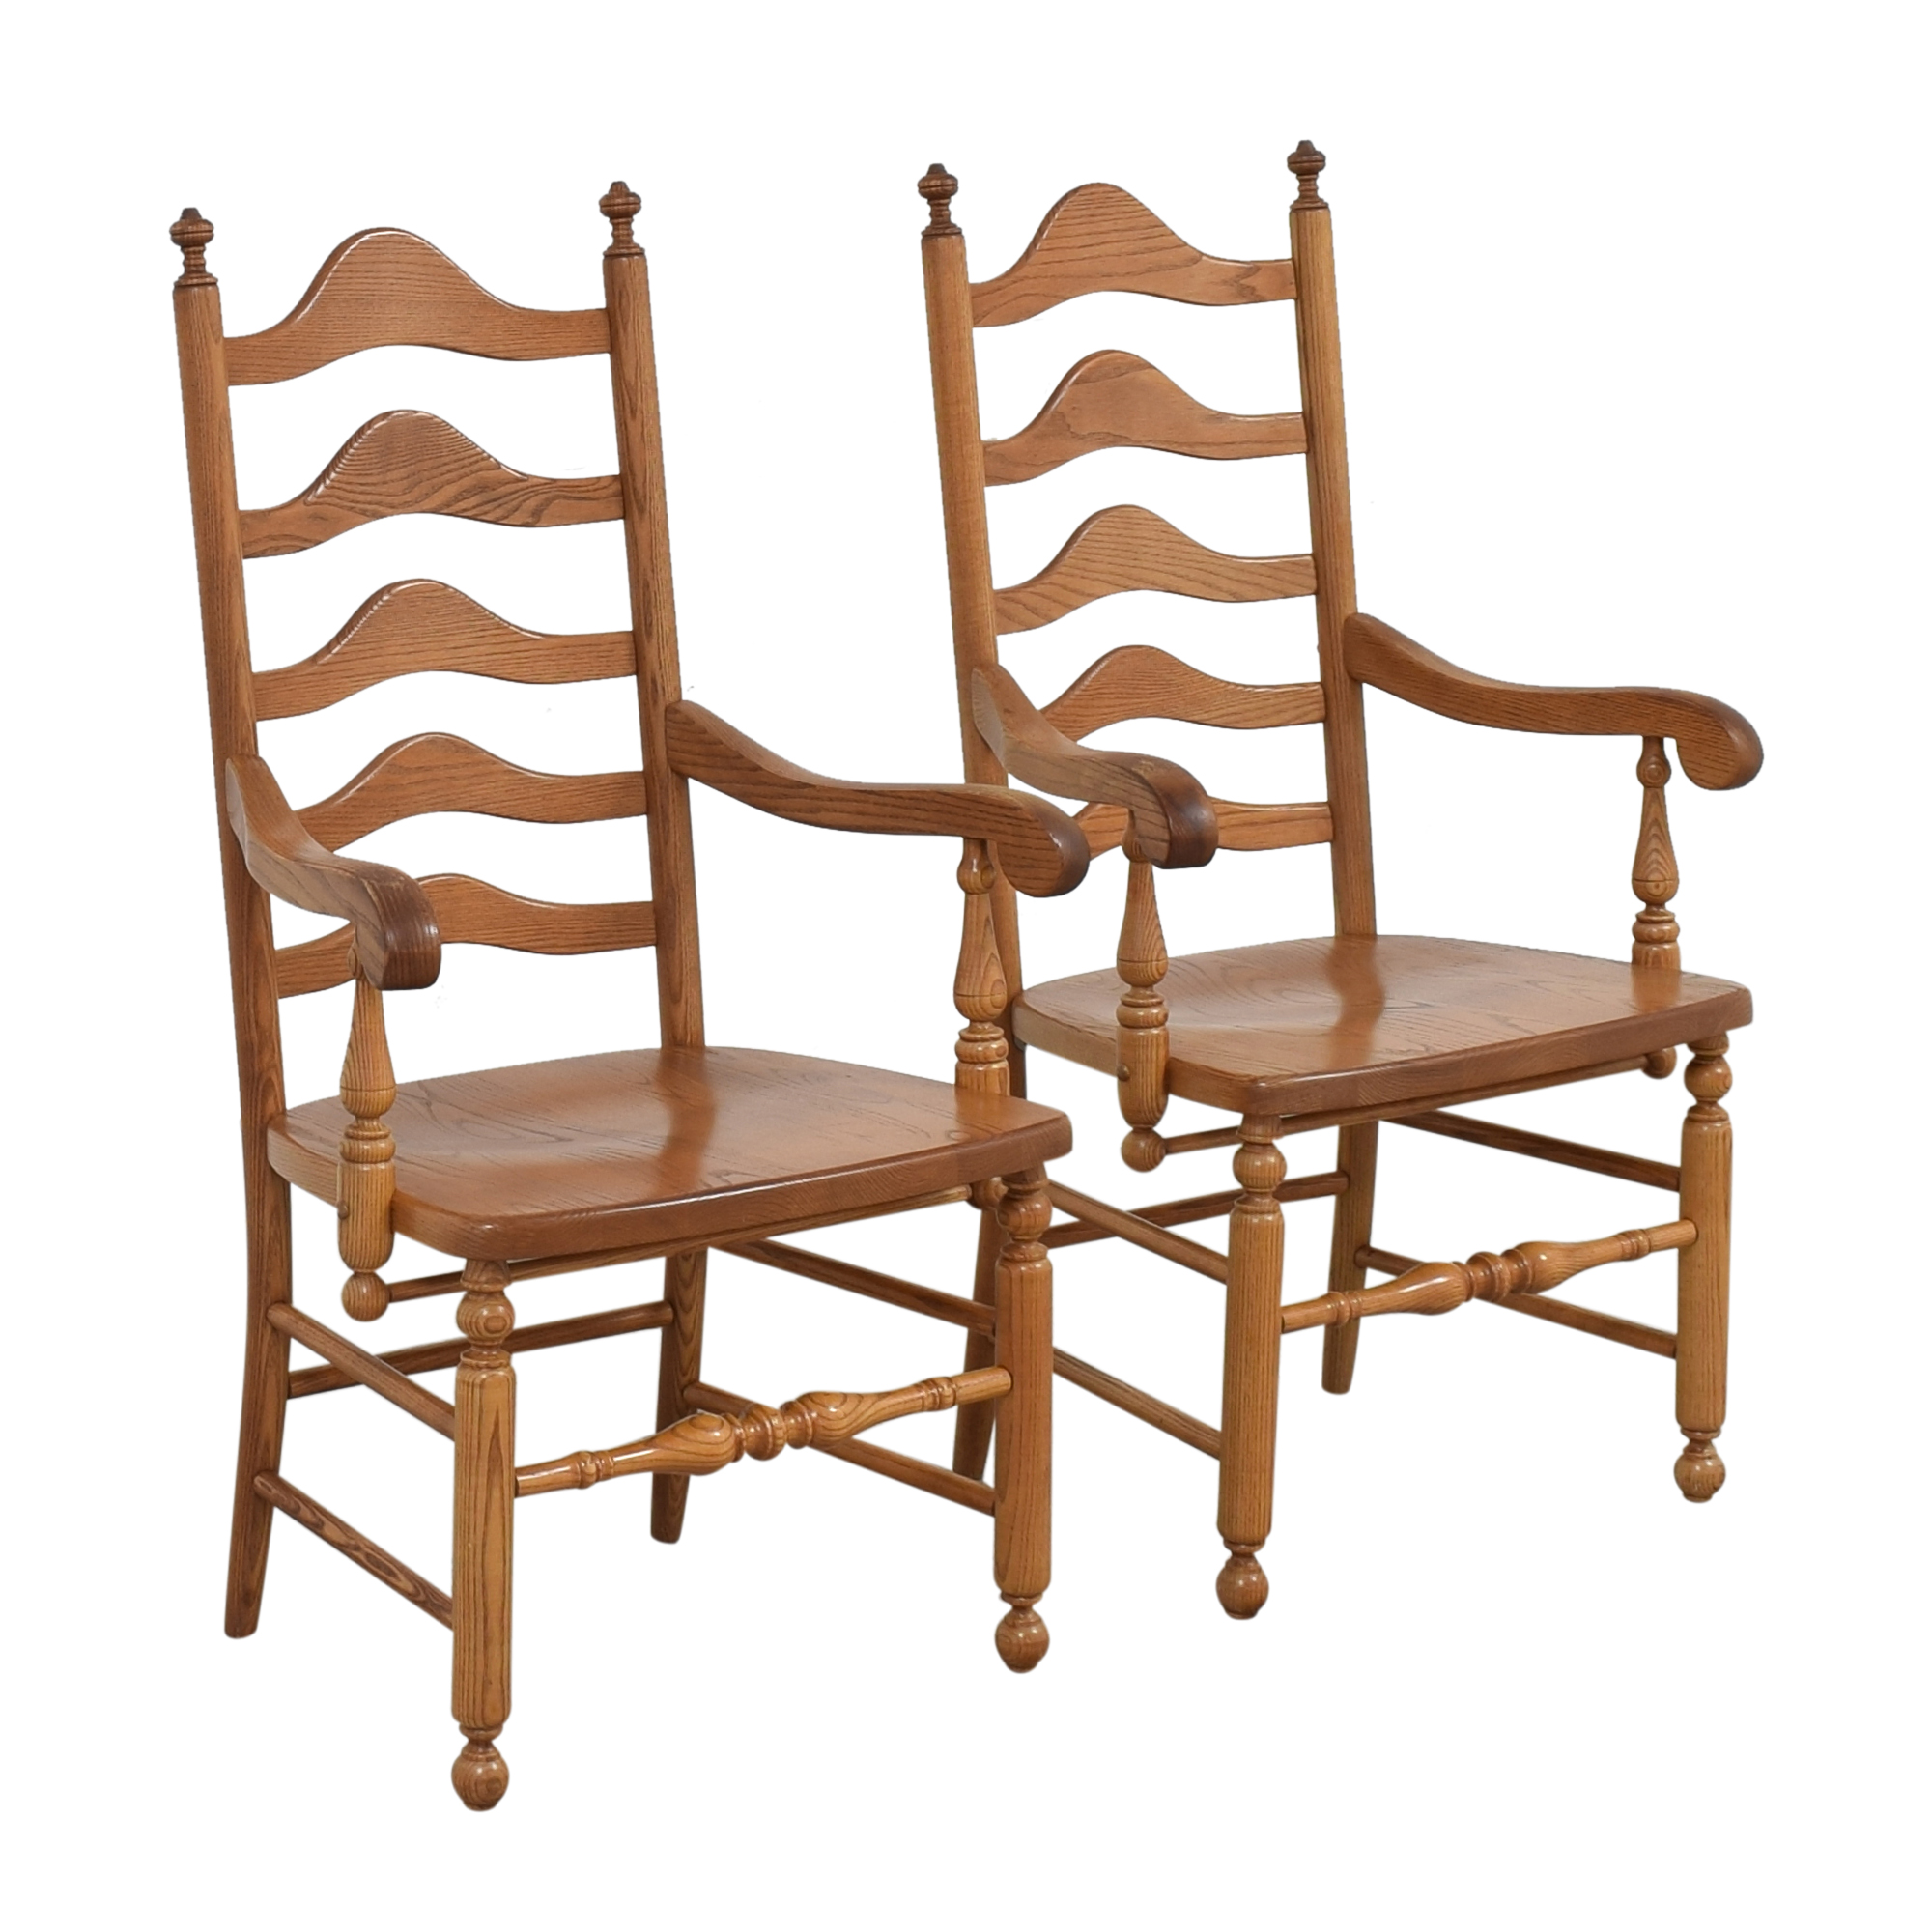 S. Bent & Bros S. Bent & Bros Ladder Back Dining Arm Chairs on sale